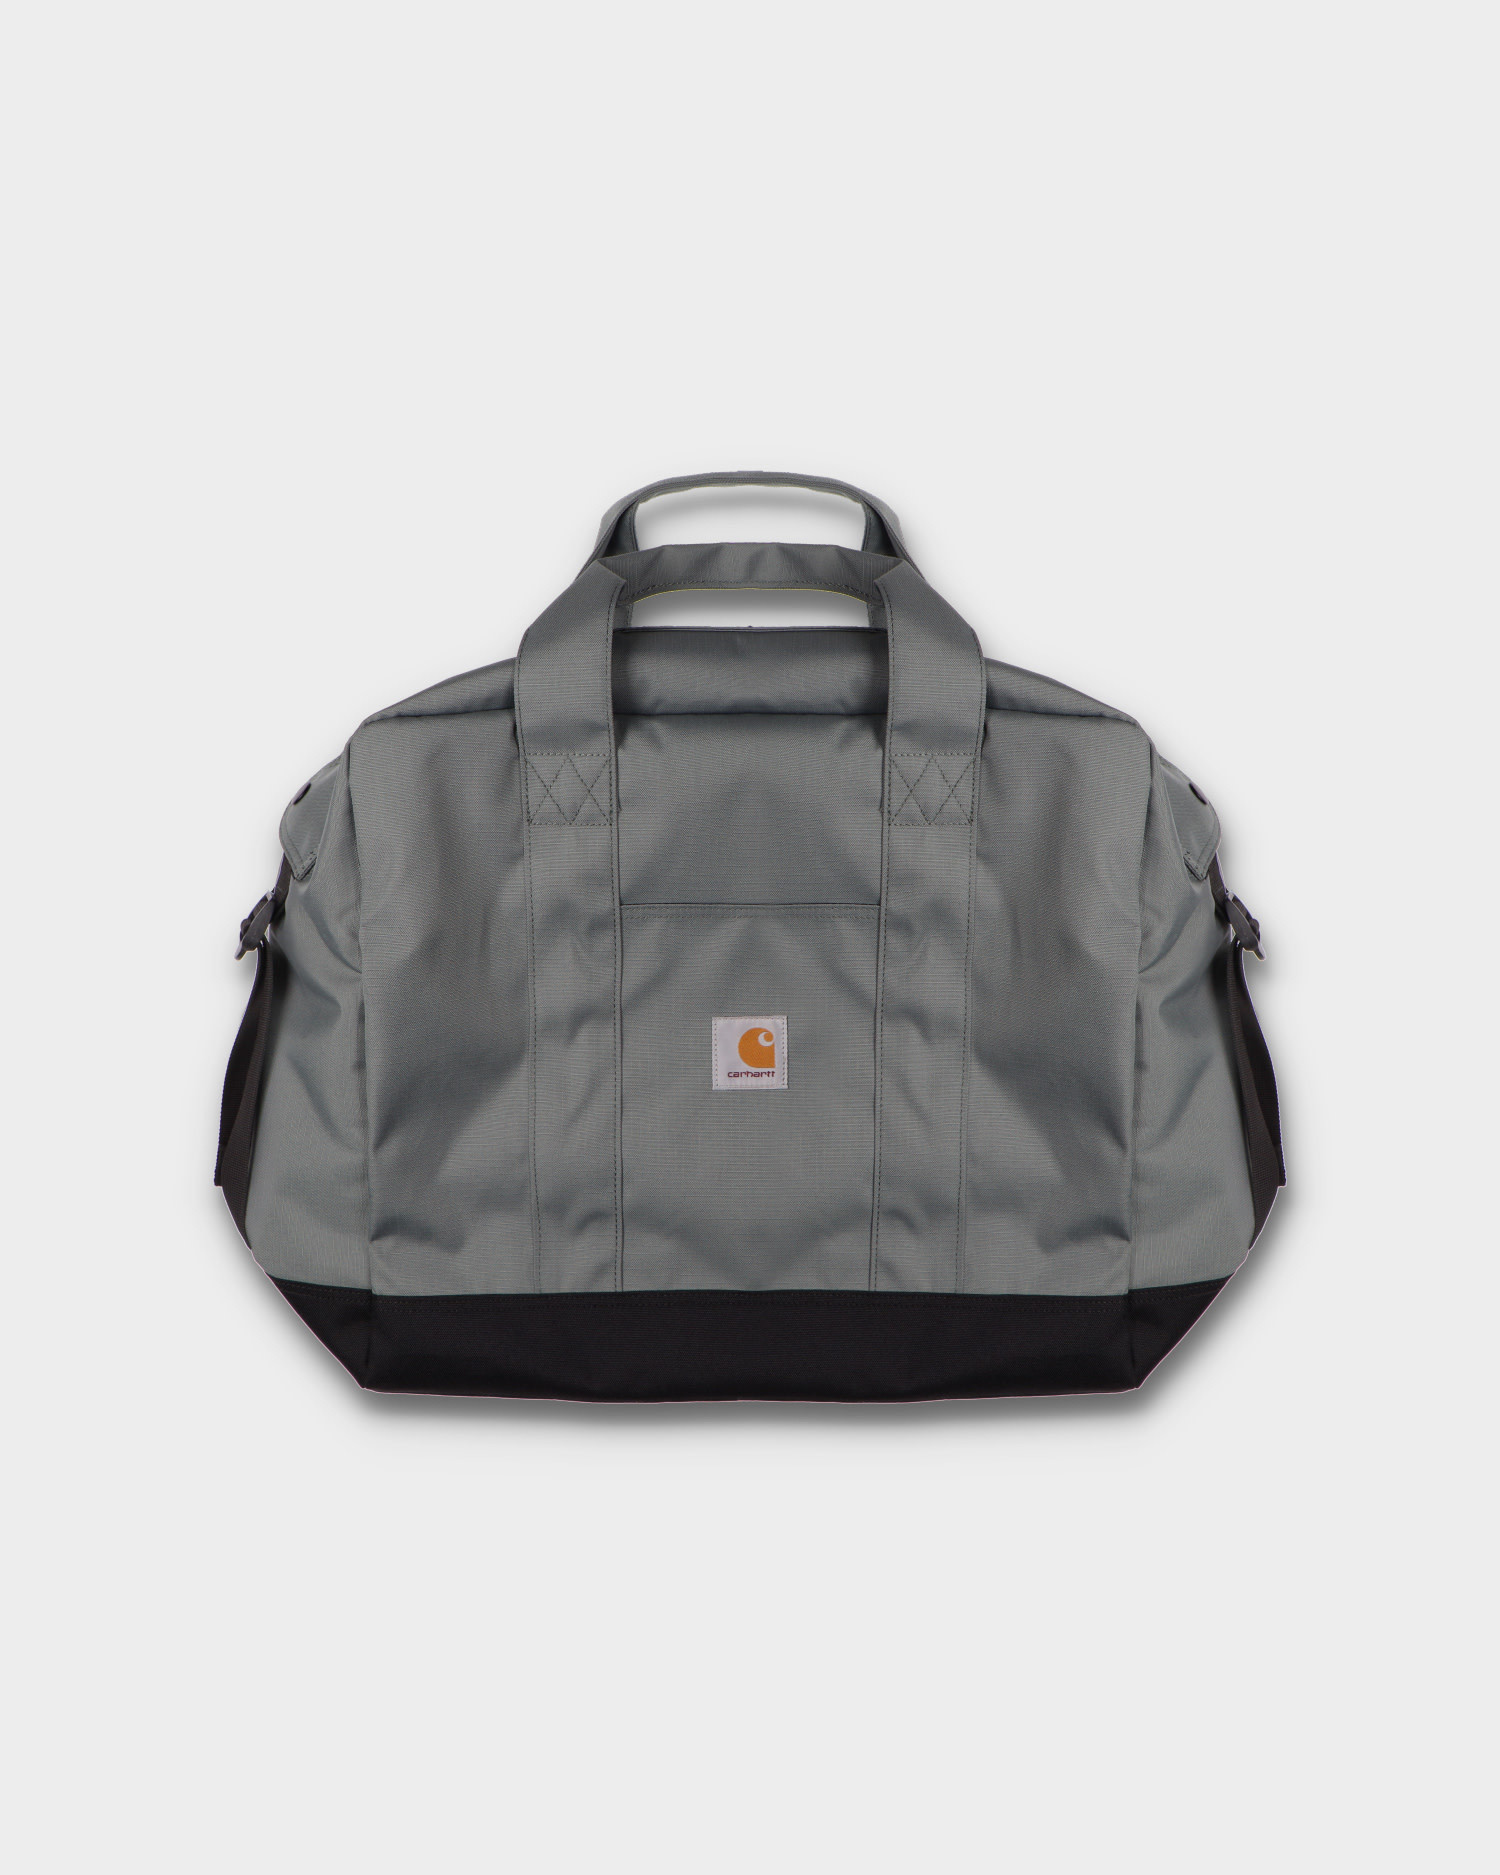 Carhartt Vernon Weekend Bag Polyester/Recycled Polyester